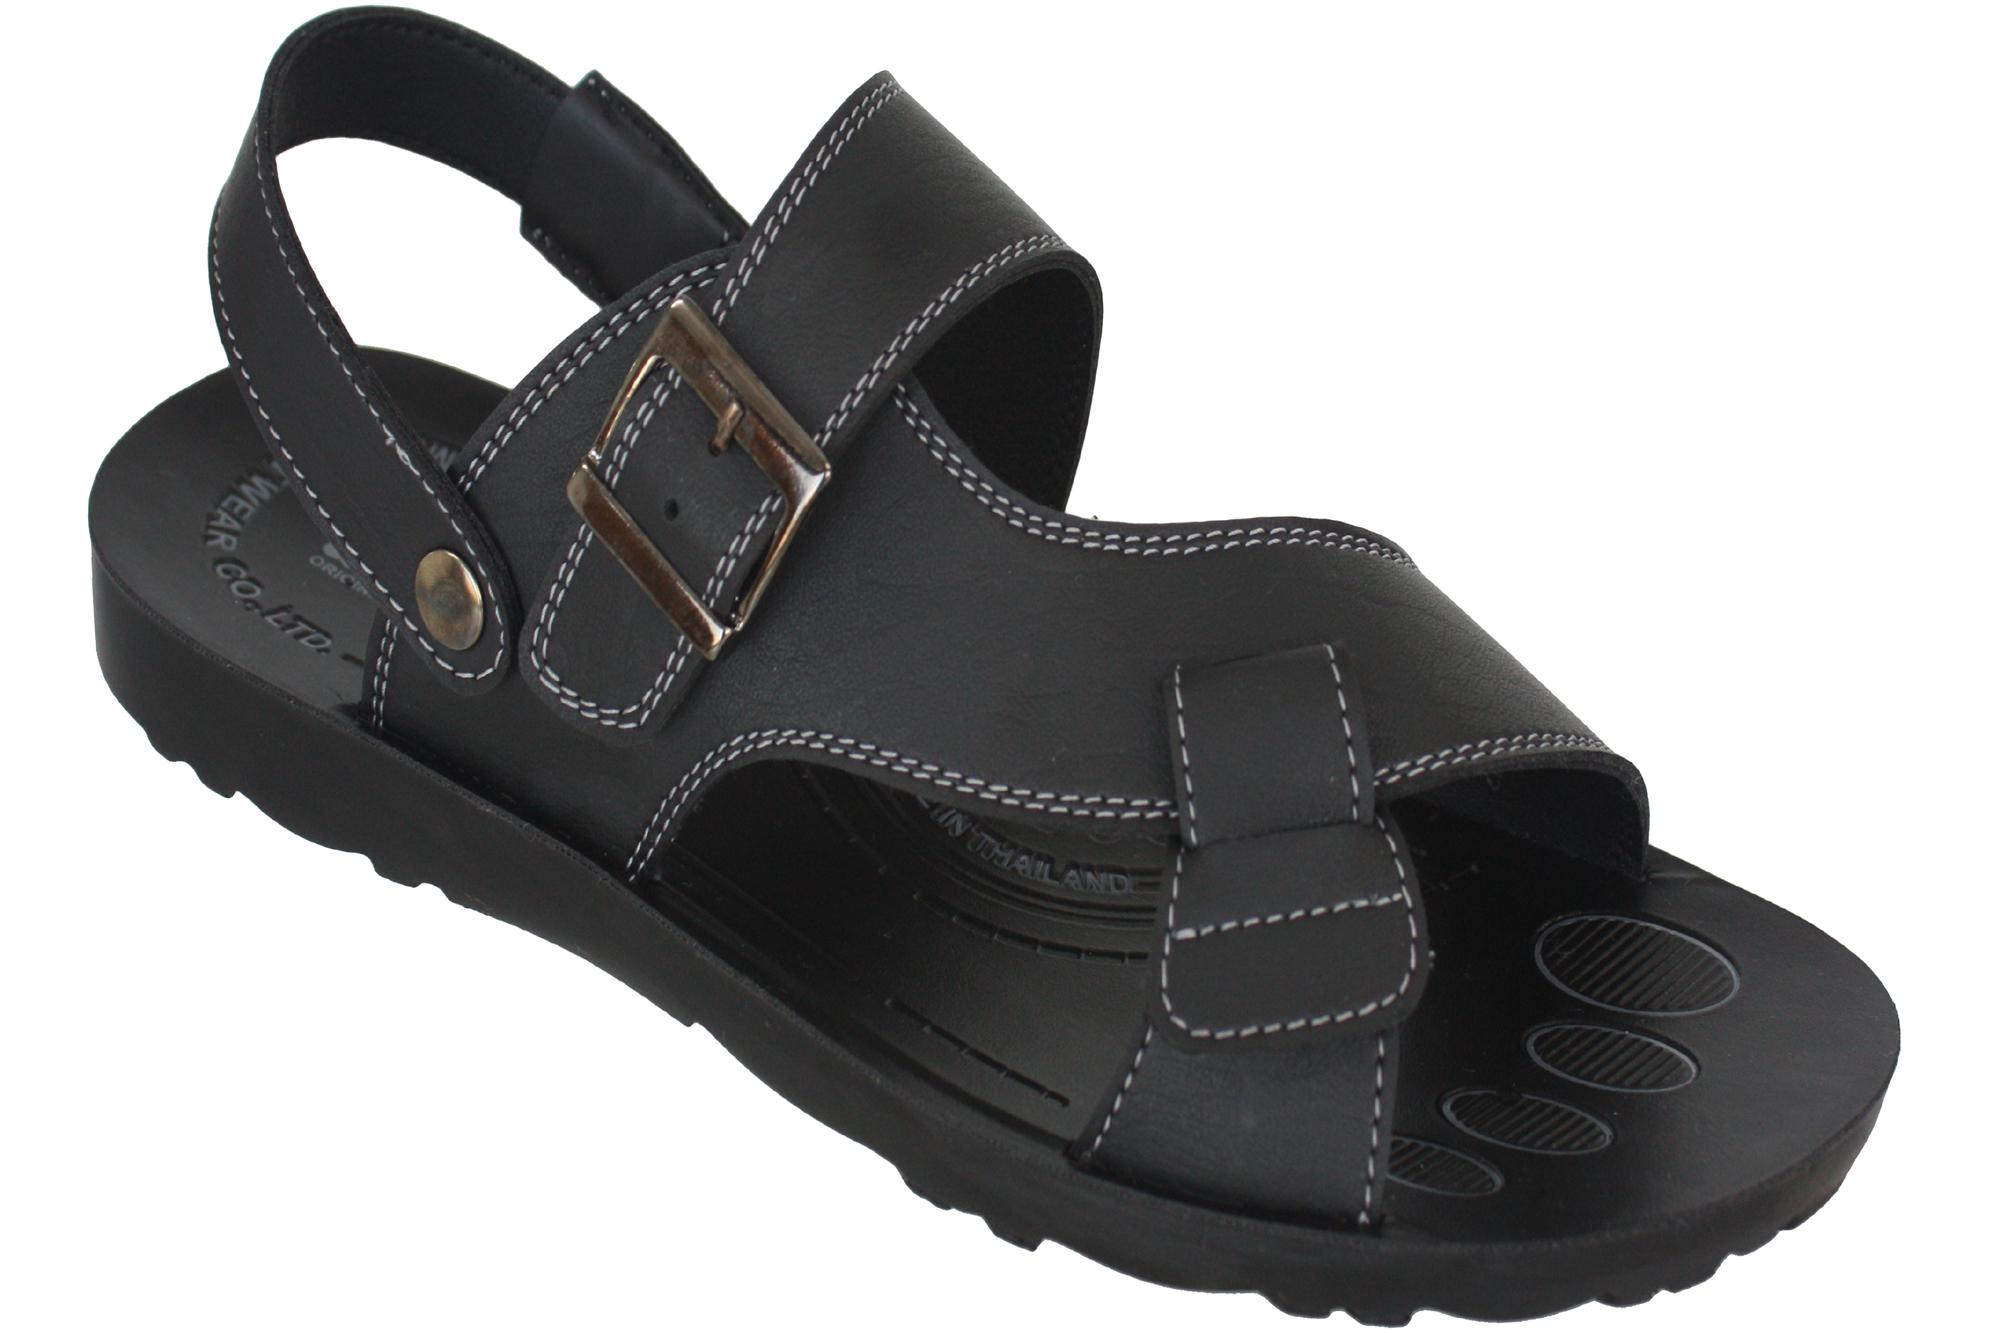 Aerosoft Synthetic Leather Sandals For Men P0110